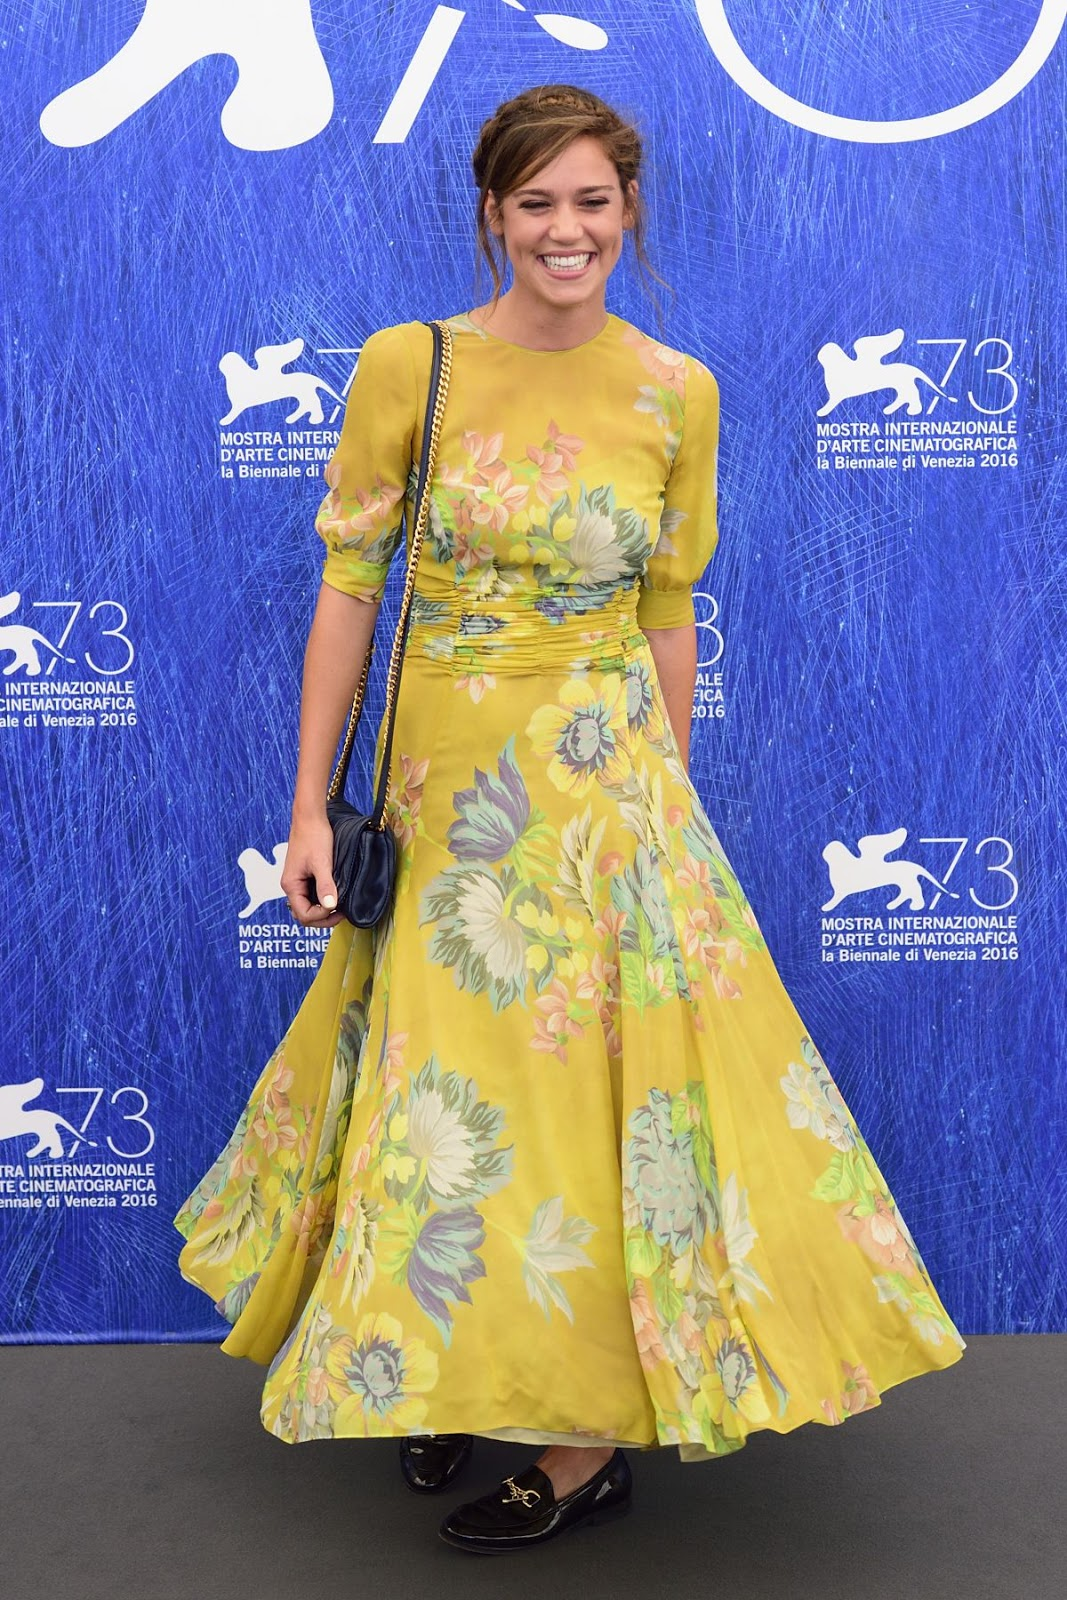 HQ Photos of Matilda Lutz At L'estate Addosso Summertime Photocall At 73rd Venice Film Festival